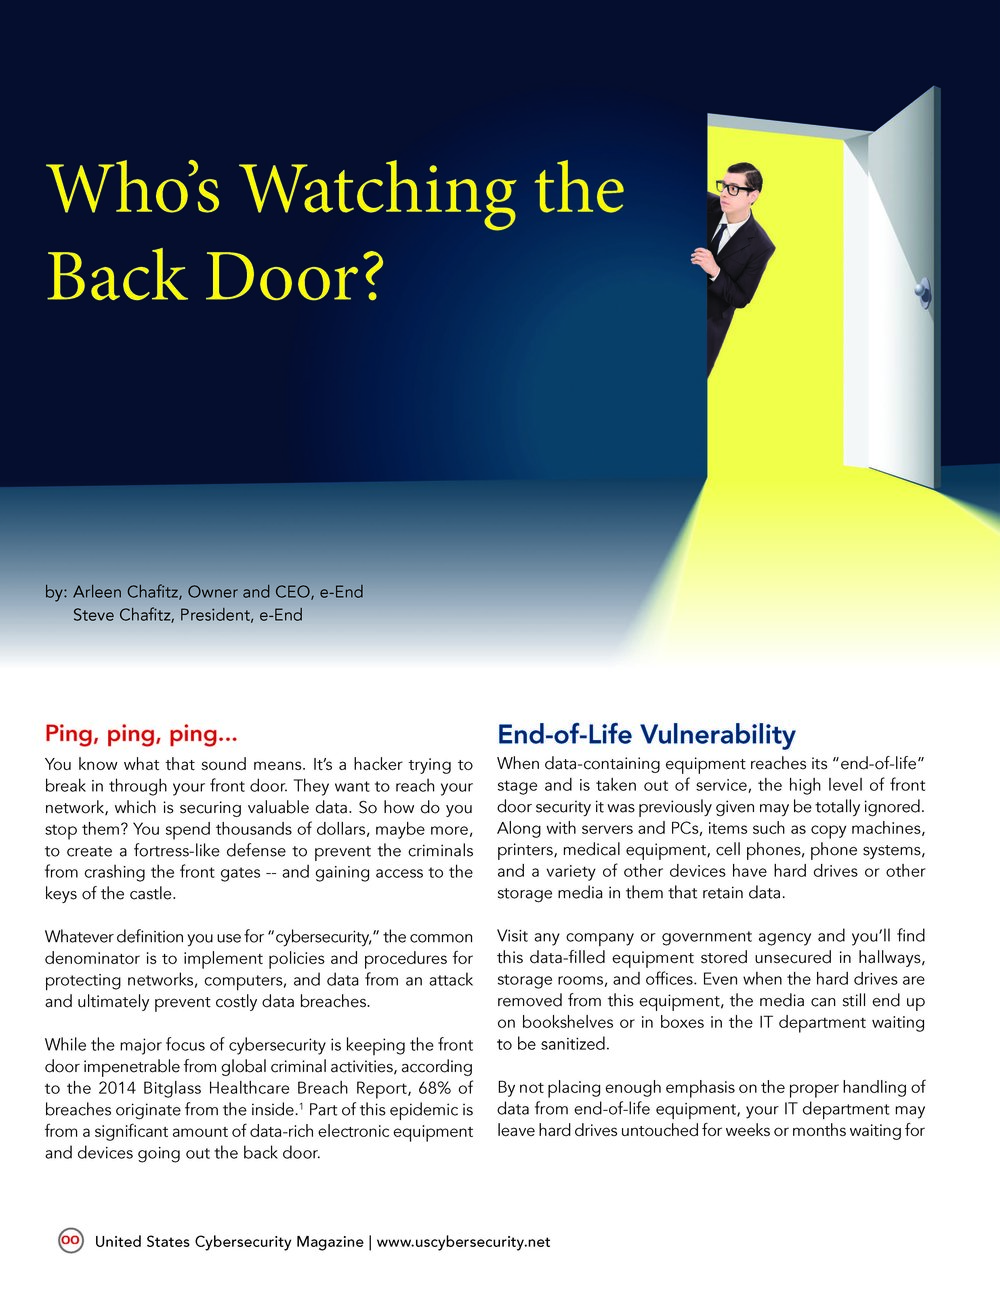 End-of-life vulnerability is a door left wide open! - Click below to download the article and learn about the solution.